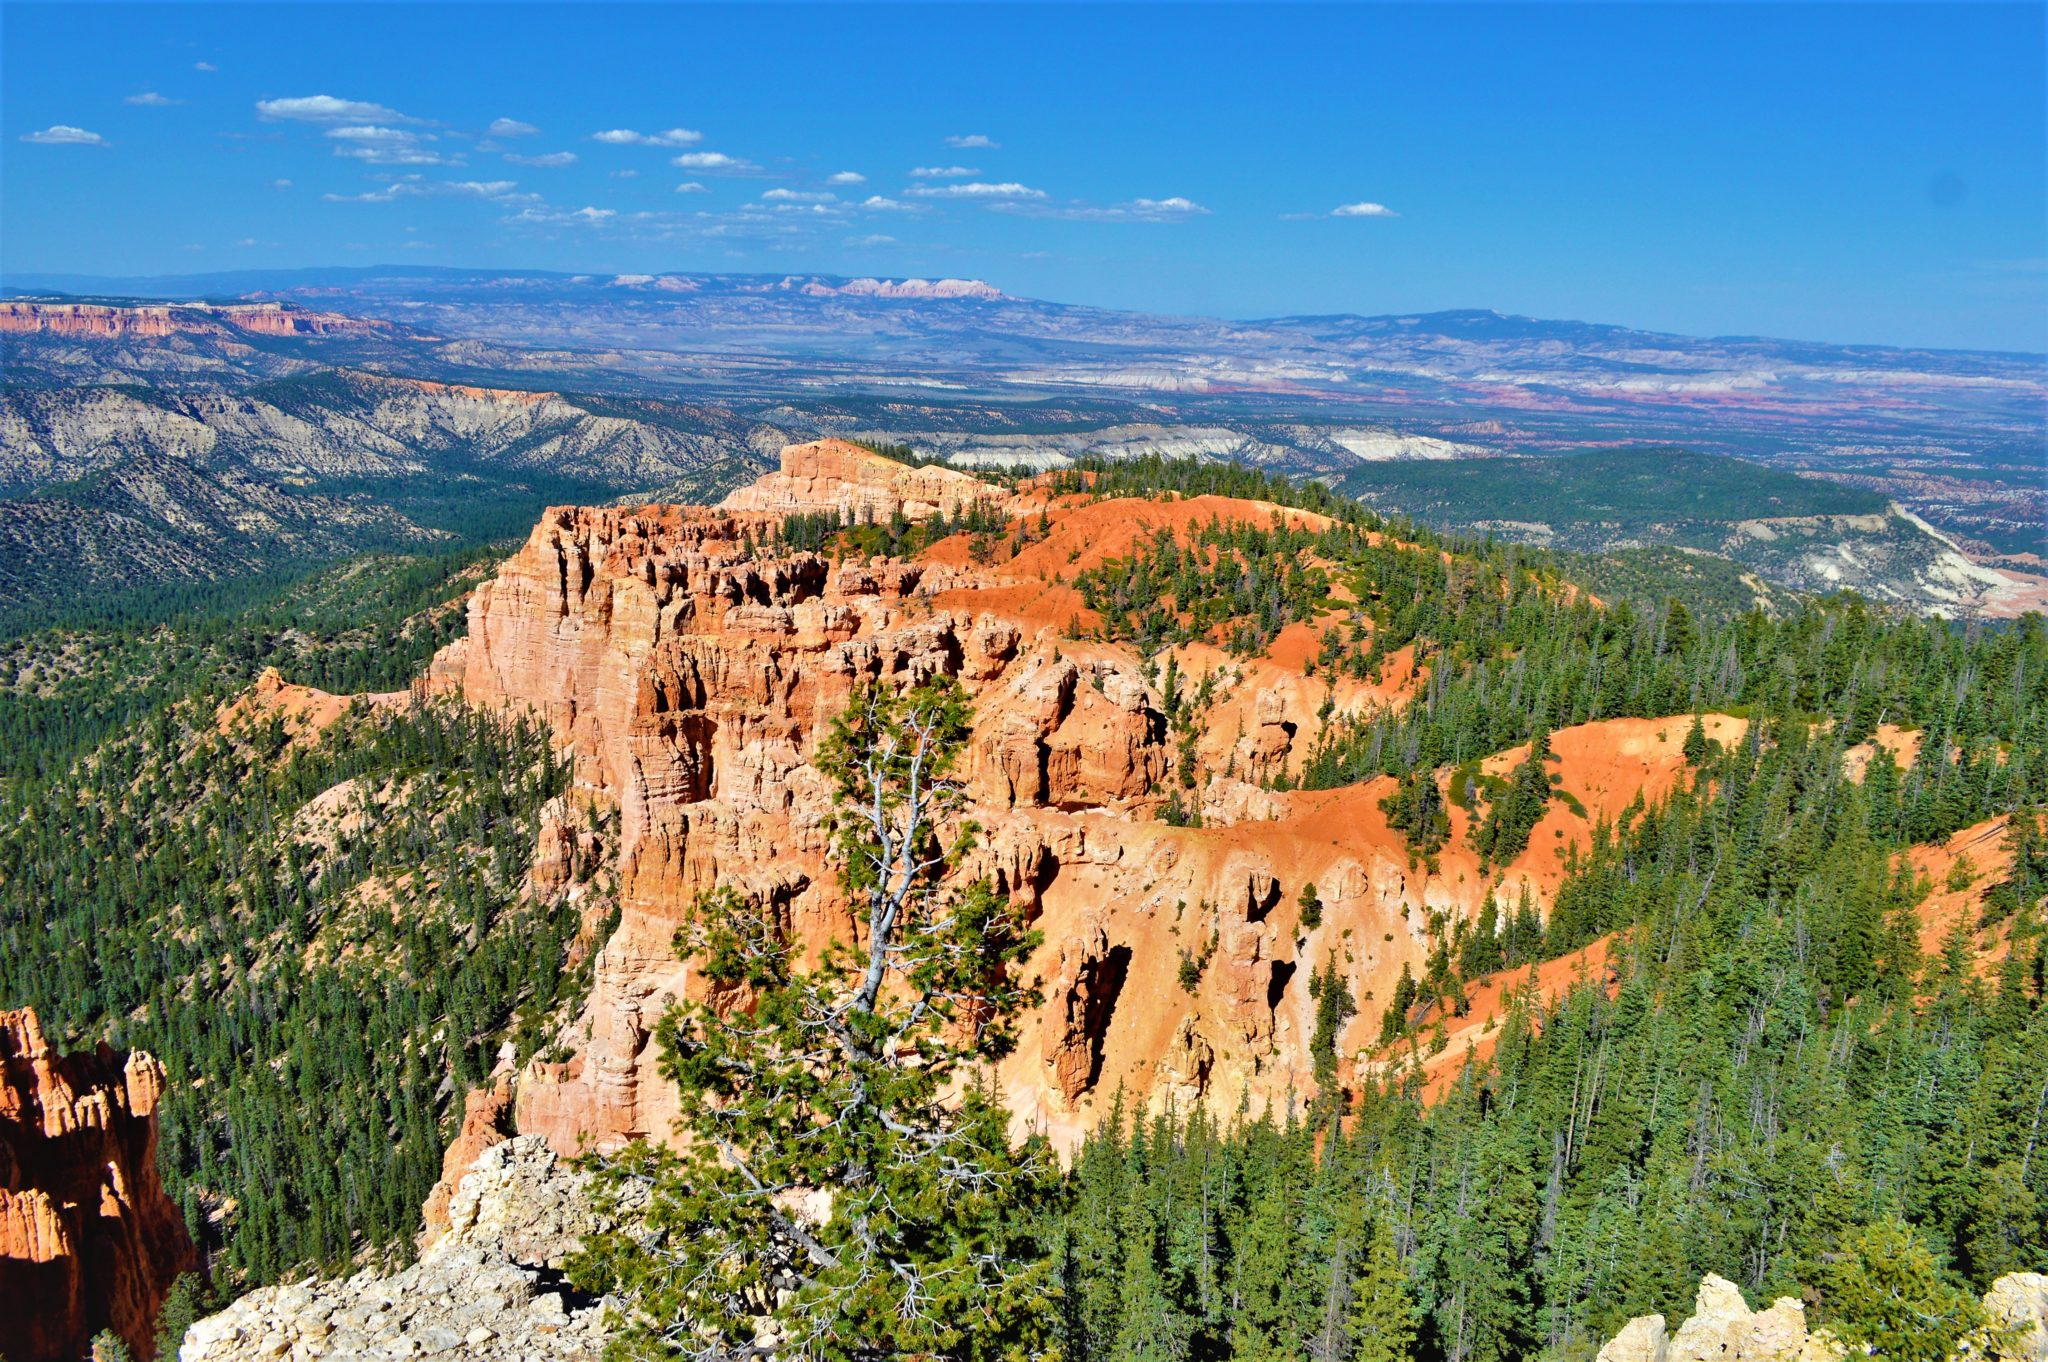 Rainbow point view bryce canyon national park, usa